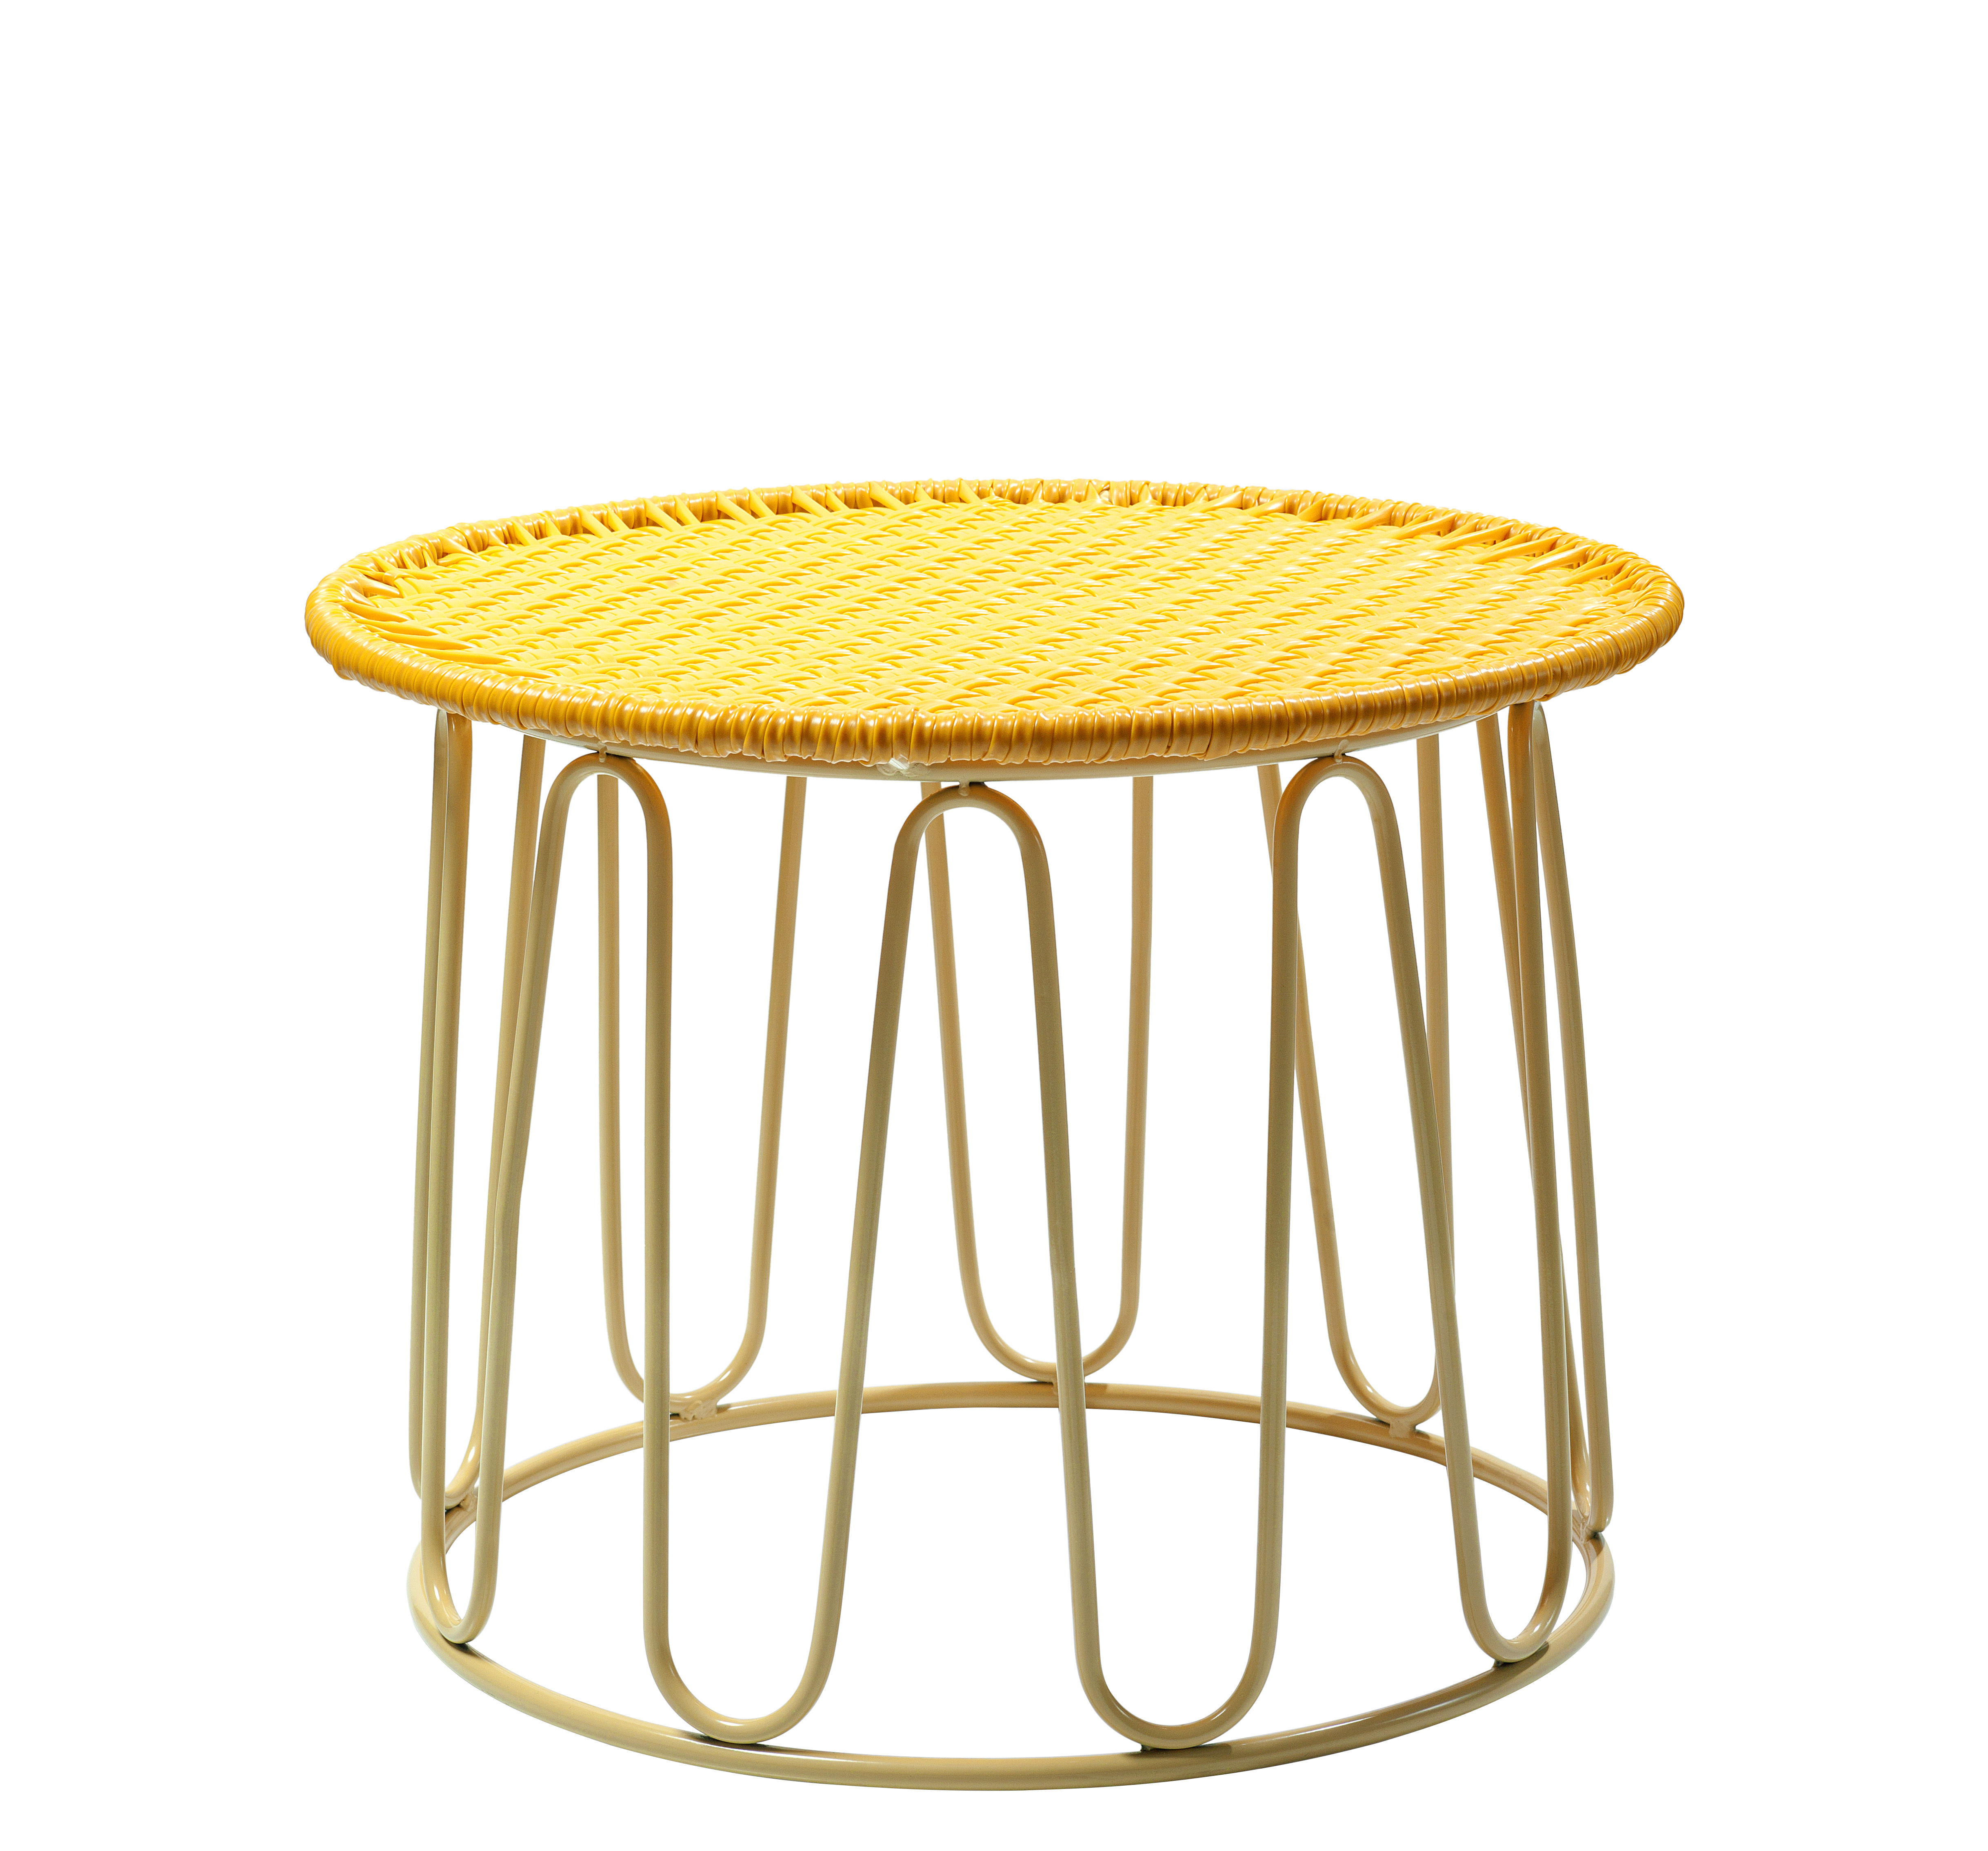 Furniture - Coffee Tables - Circo Coffee table - / Ø 51 x H 42 cm by ames - Yellow / Sandy base - Recycled plastic threads, Thermolacquered galvanised steel